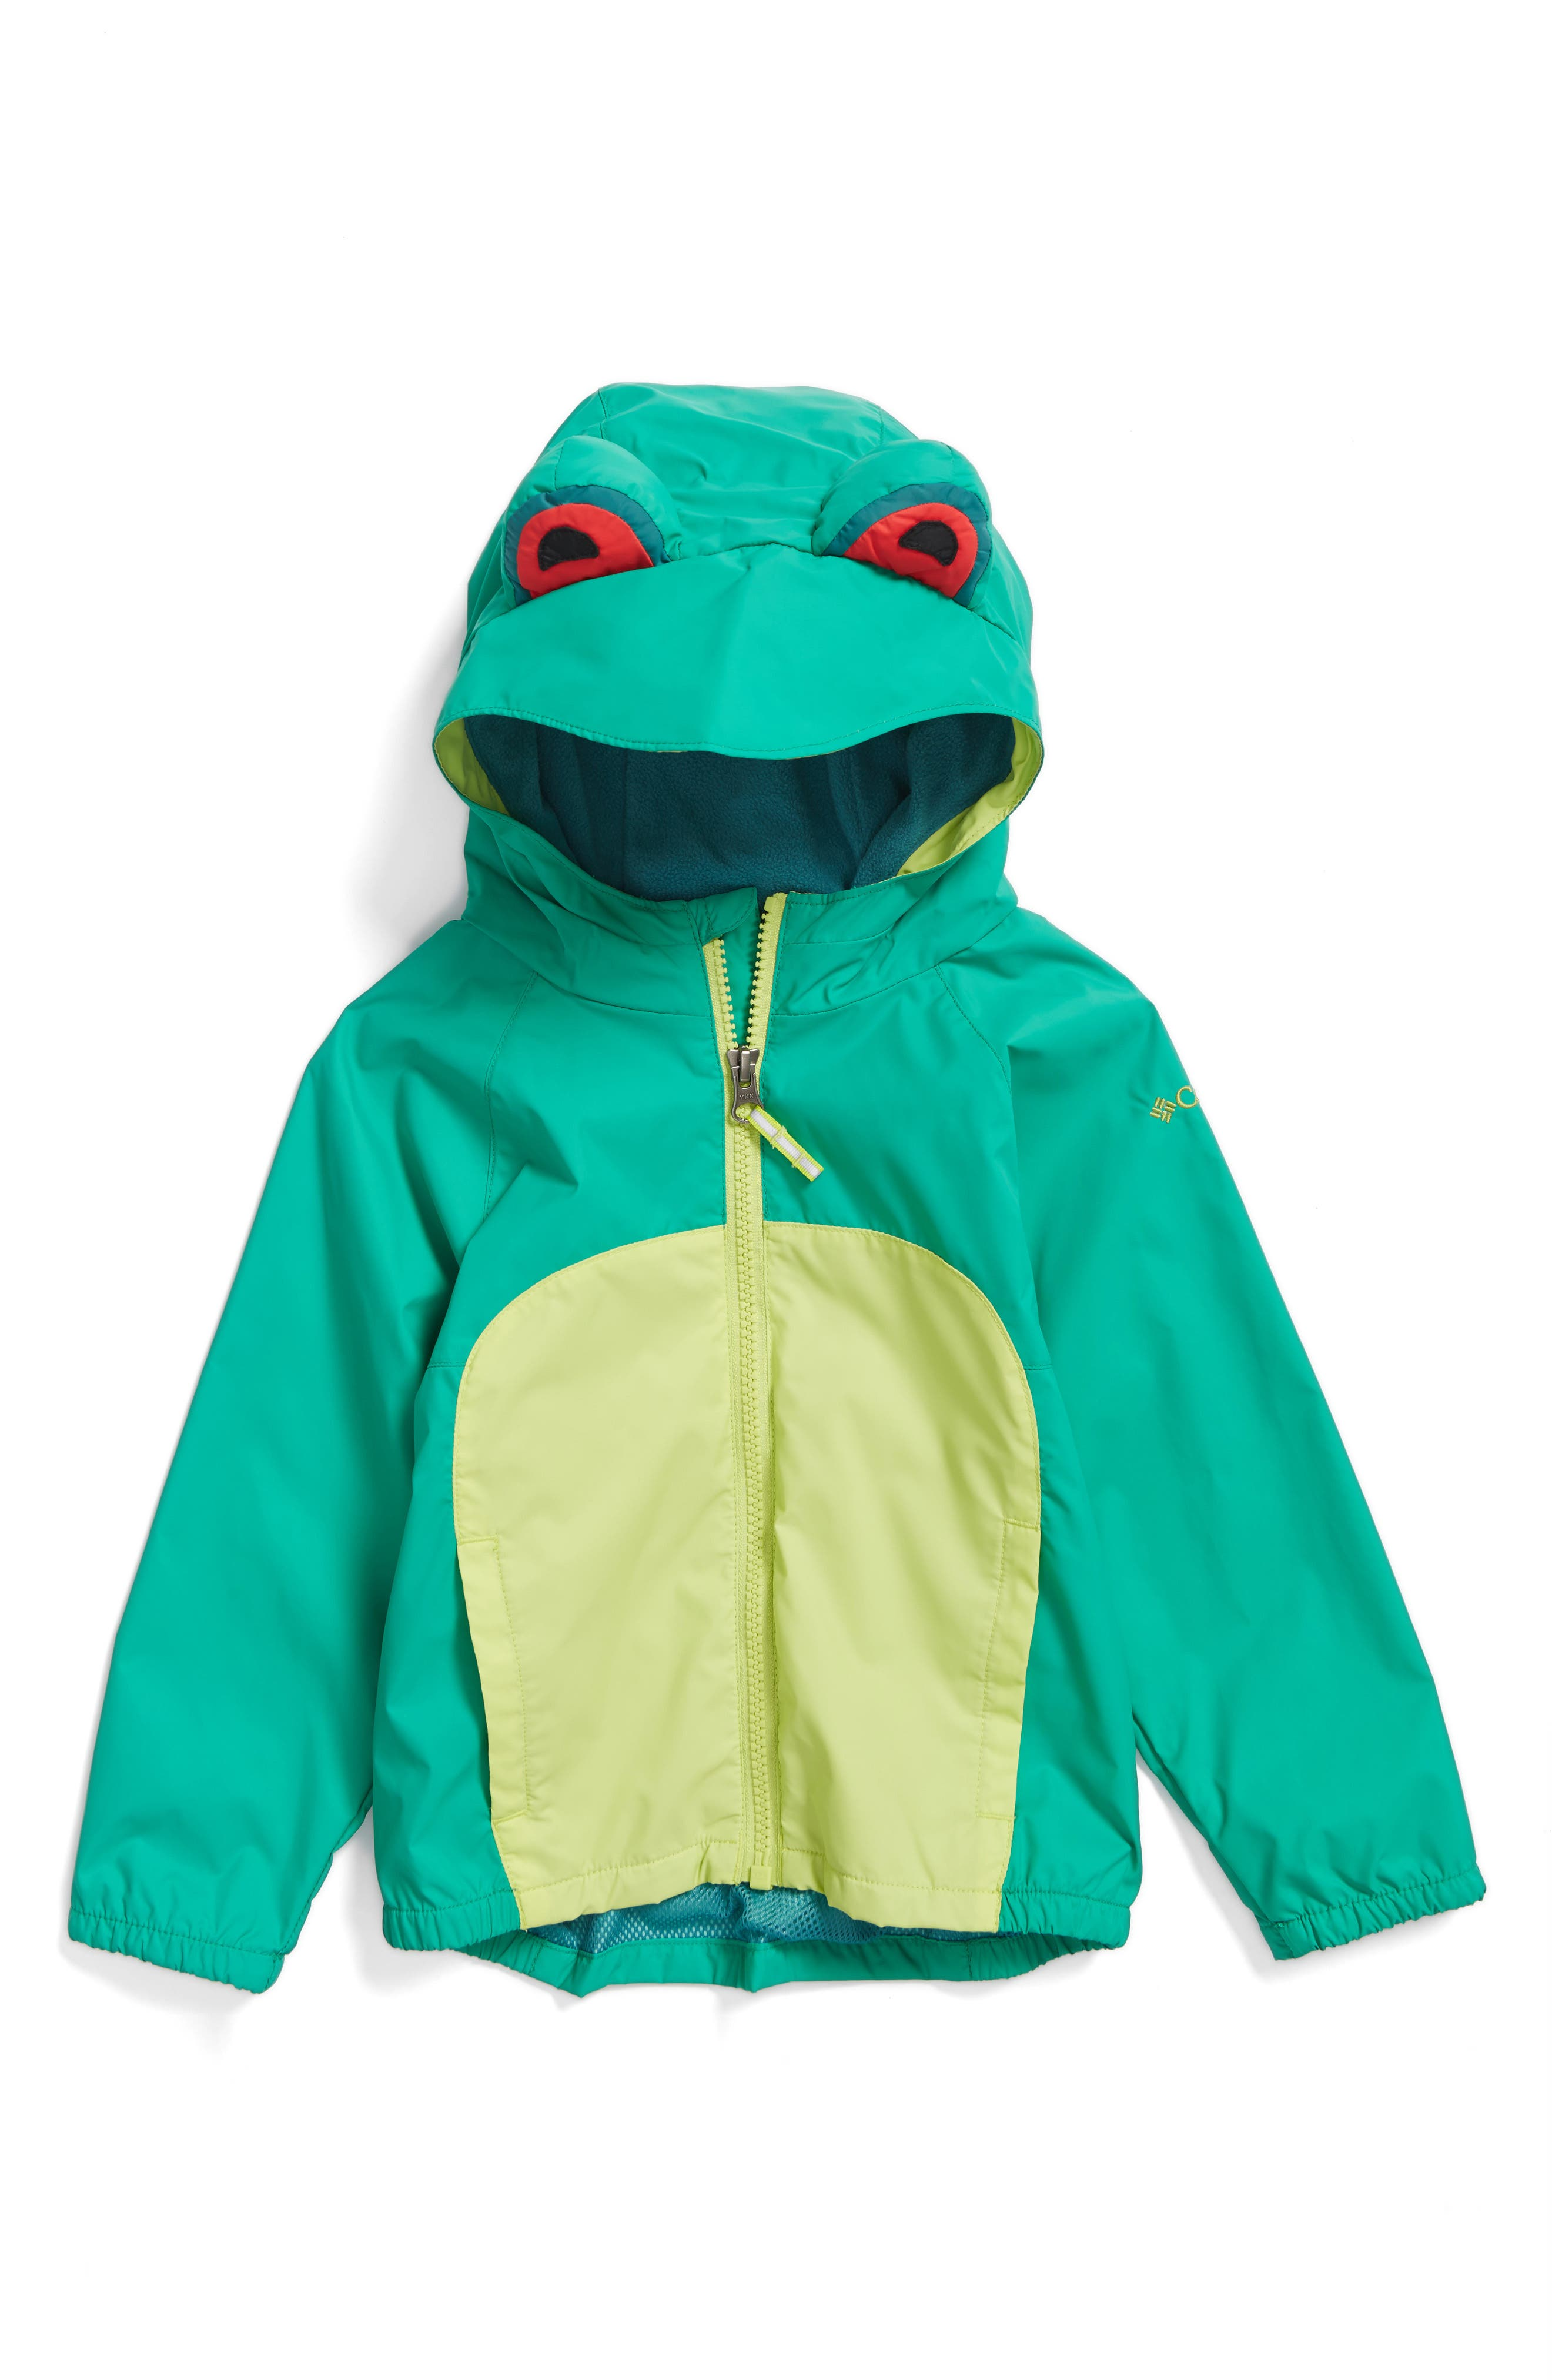 Kitteribbit Water Resistant Windbreaker,                         Main,                         color, Circuit Tree Frog